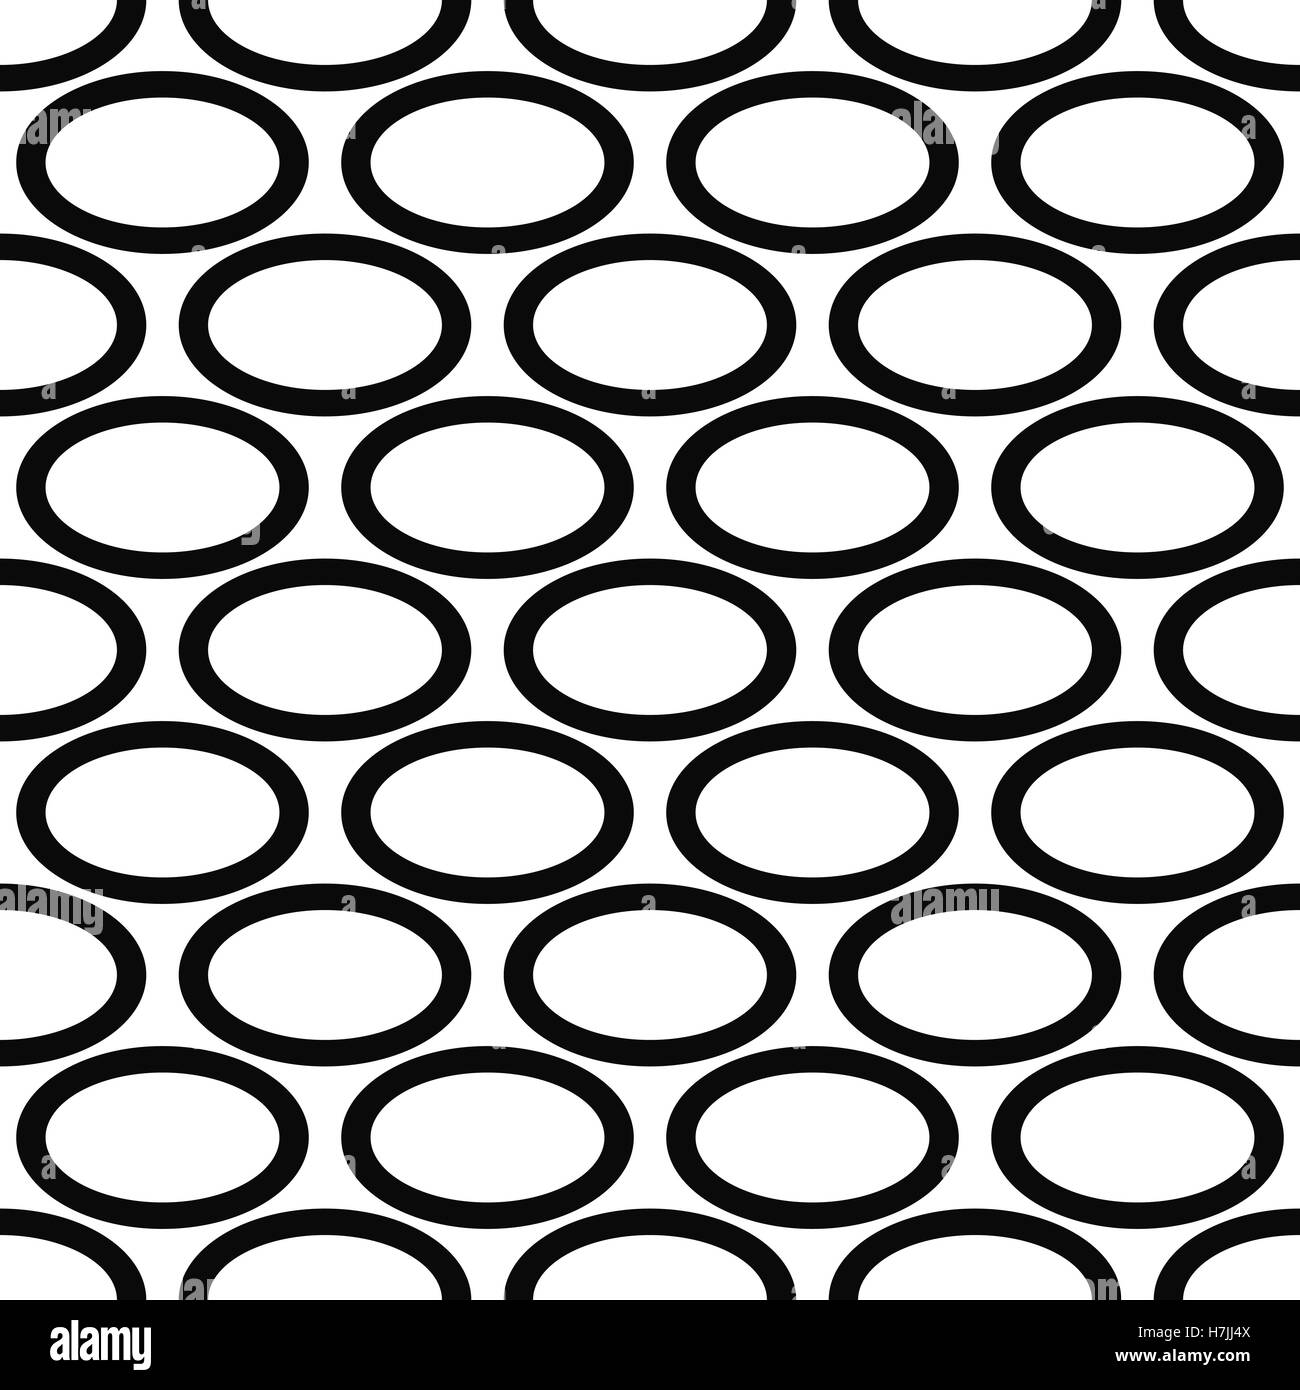 Abstract black and white ellipse pattern design Stock Vector Art ...